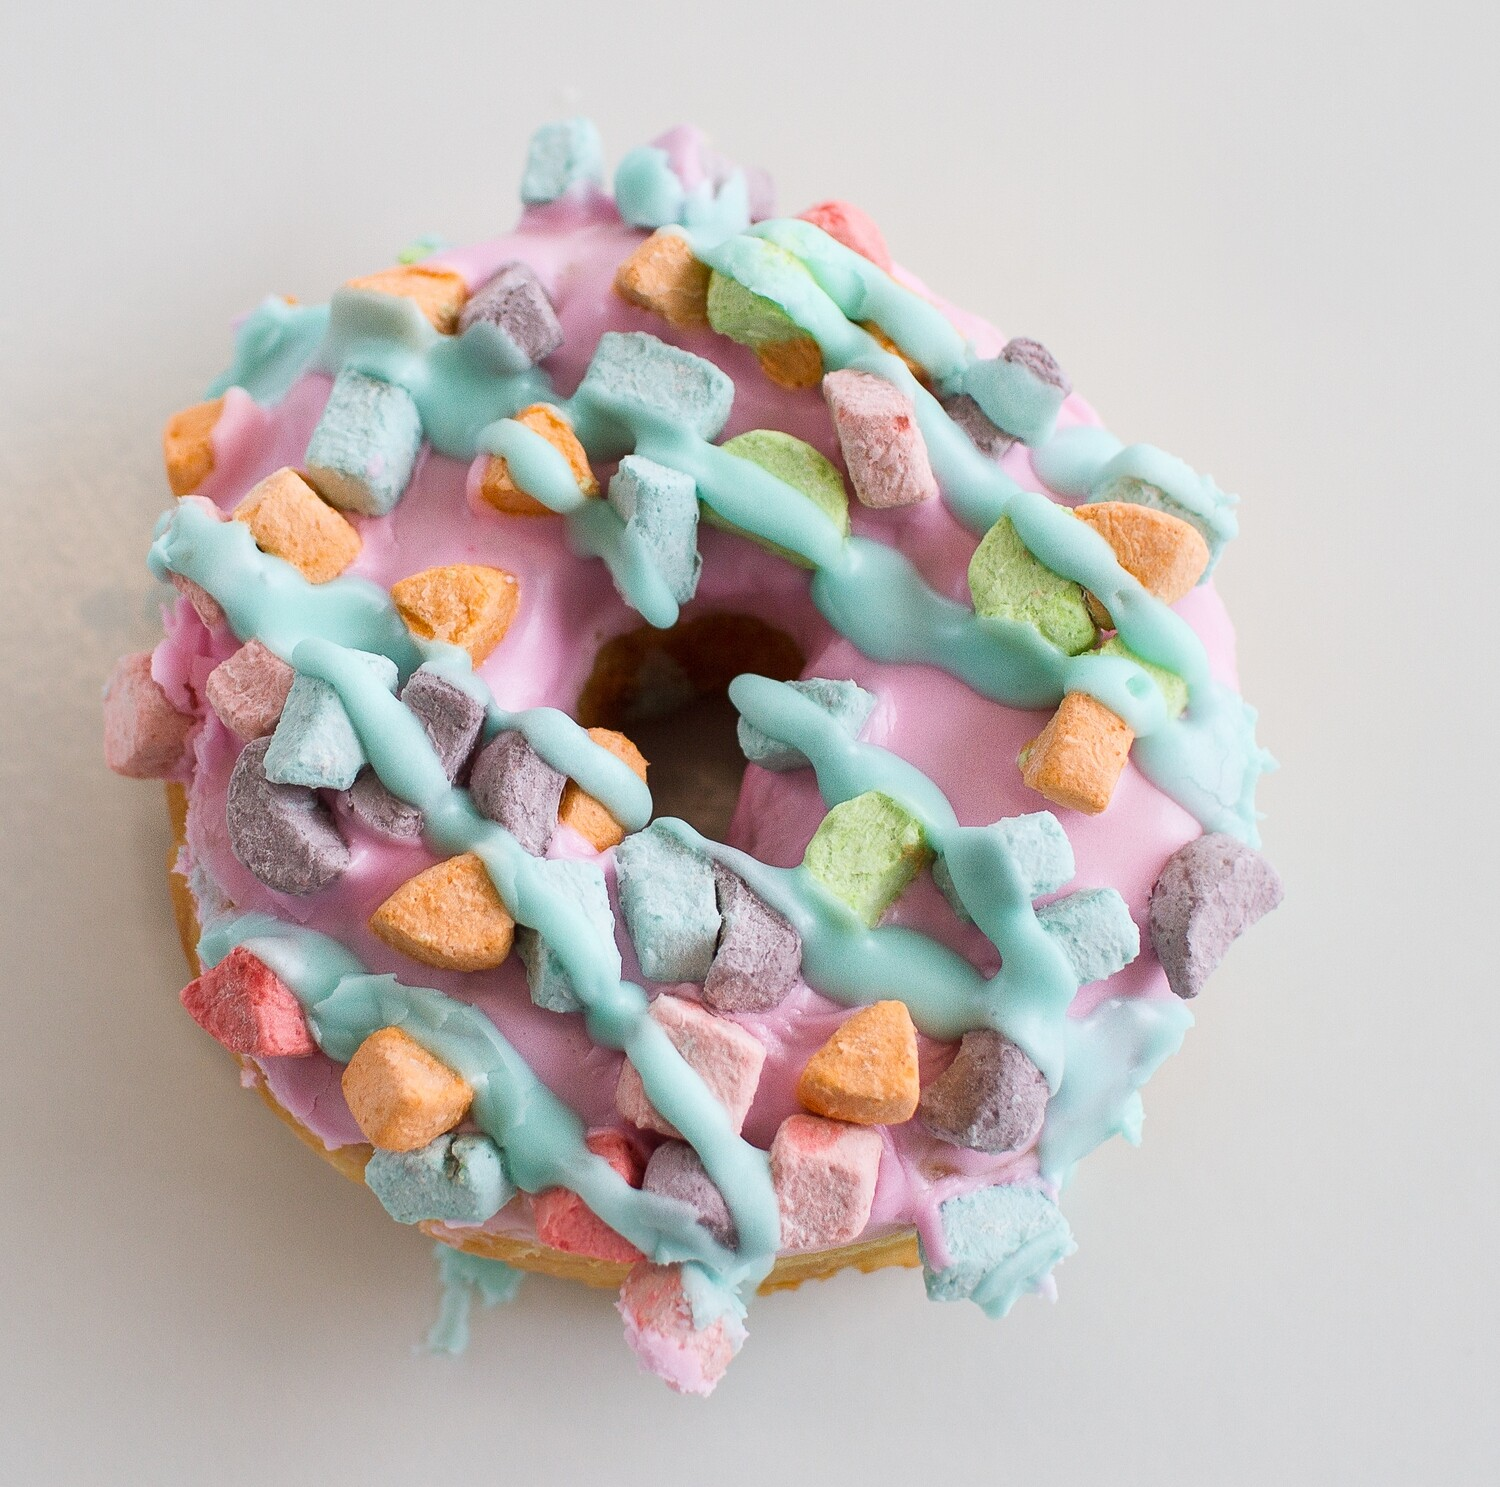 Yeast Donut, Vanilla Icing, Lucky Charm Topping (Single Donut)